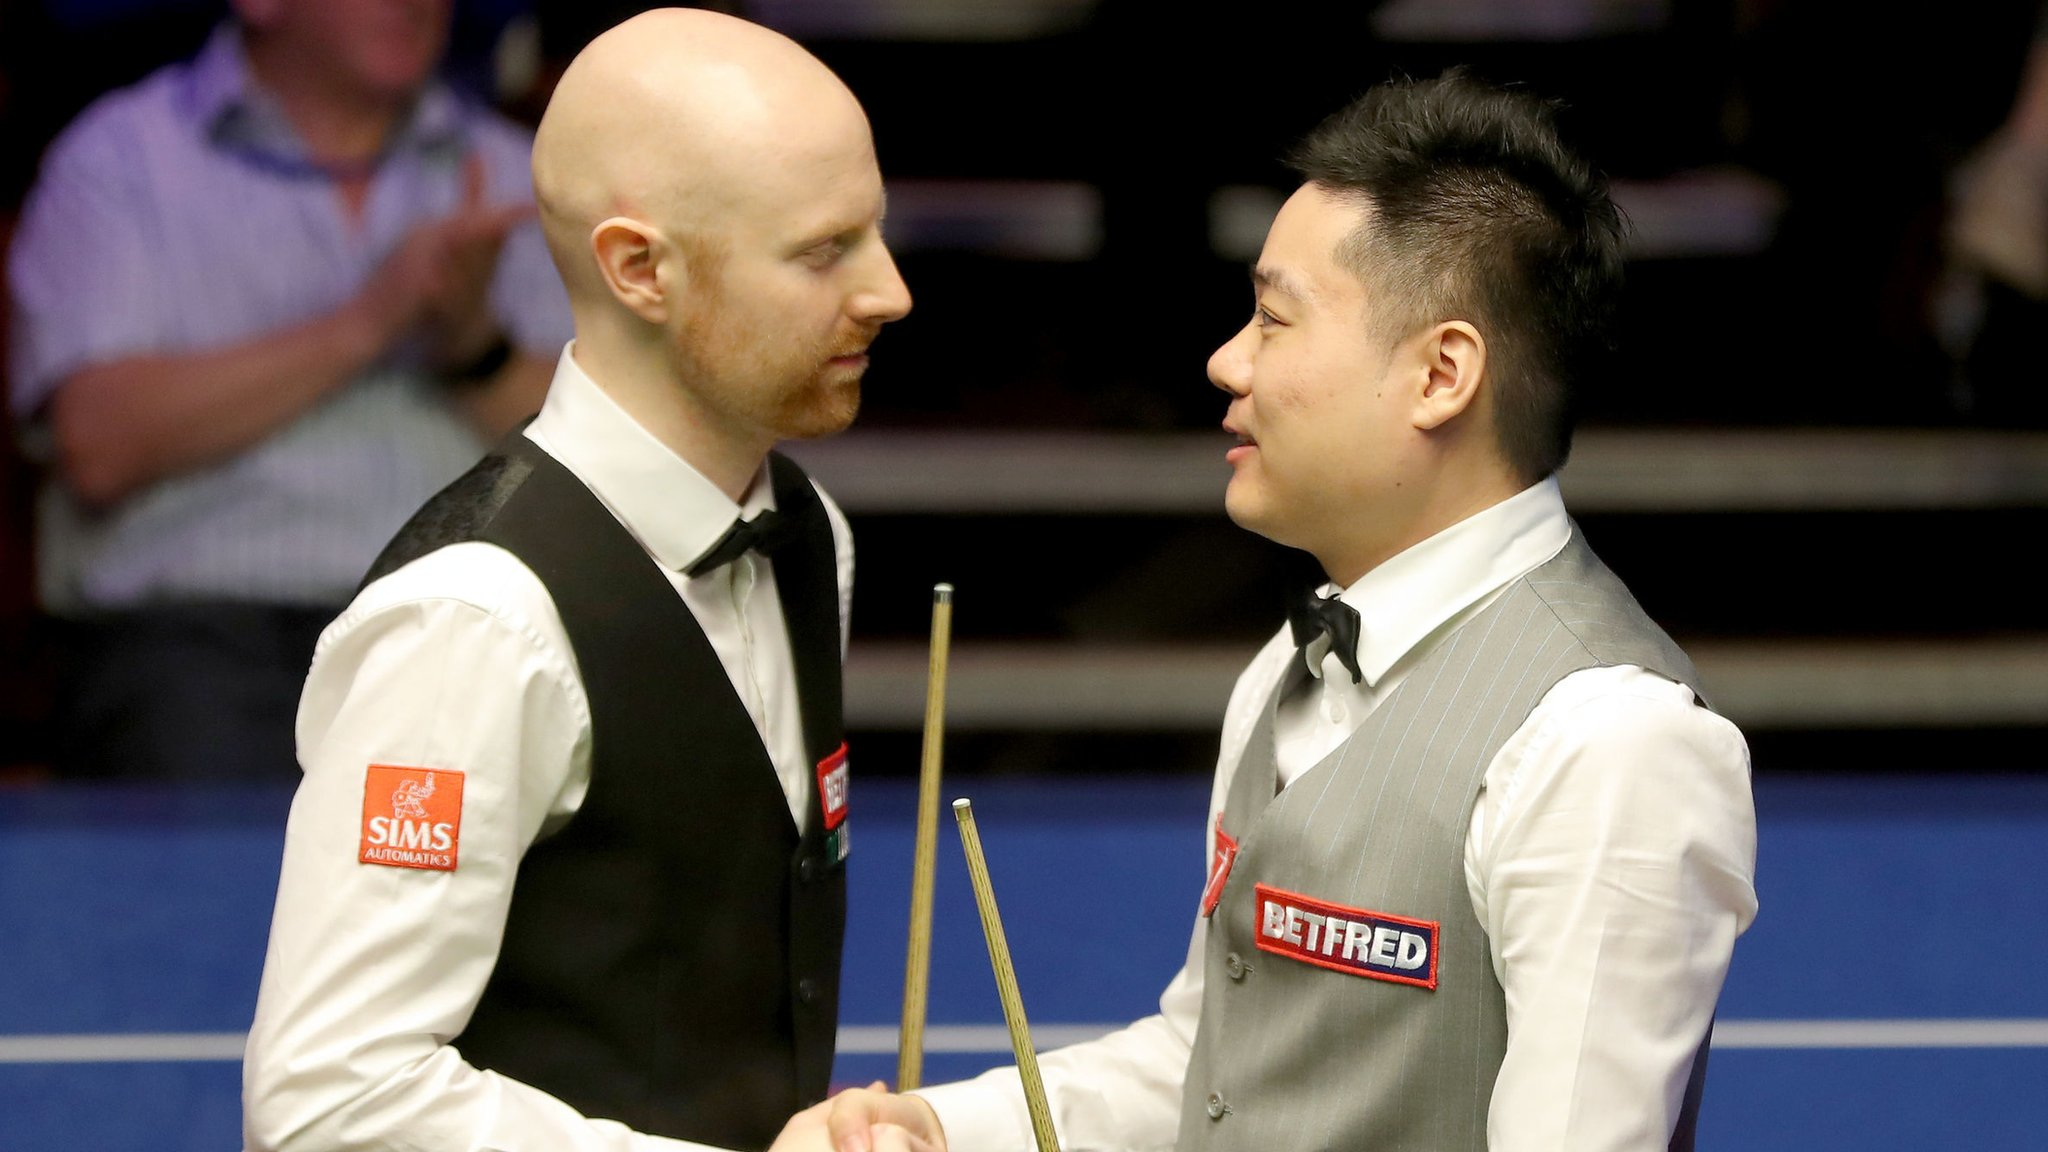 Ding beats McGill to reach second round - highlights & report